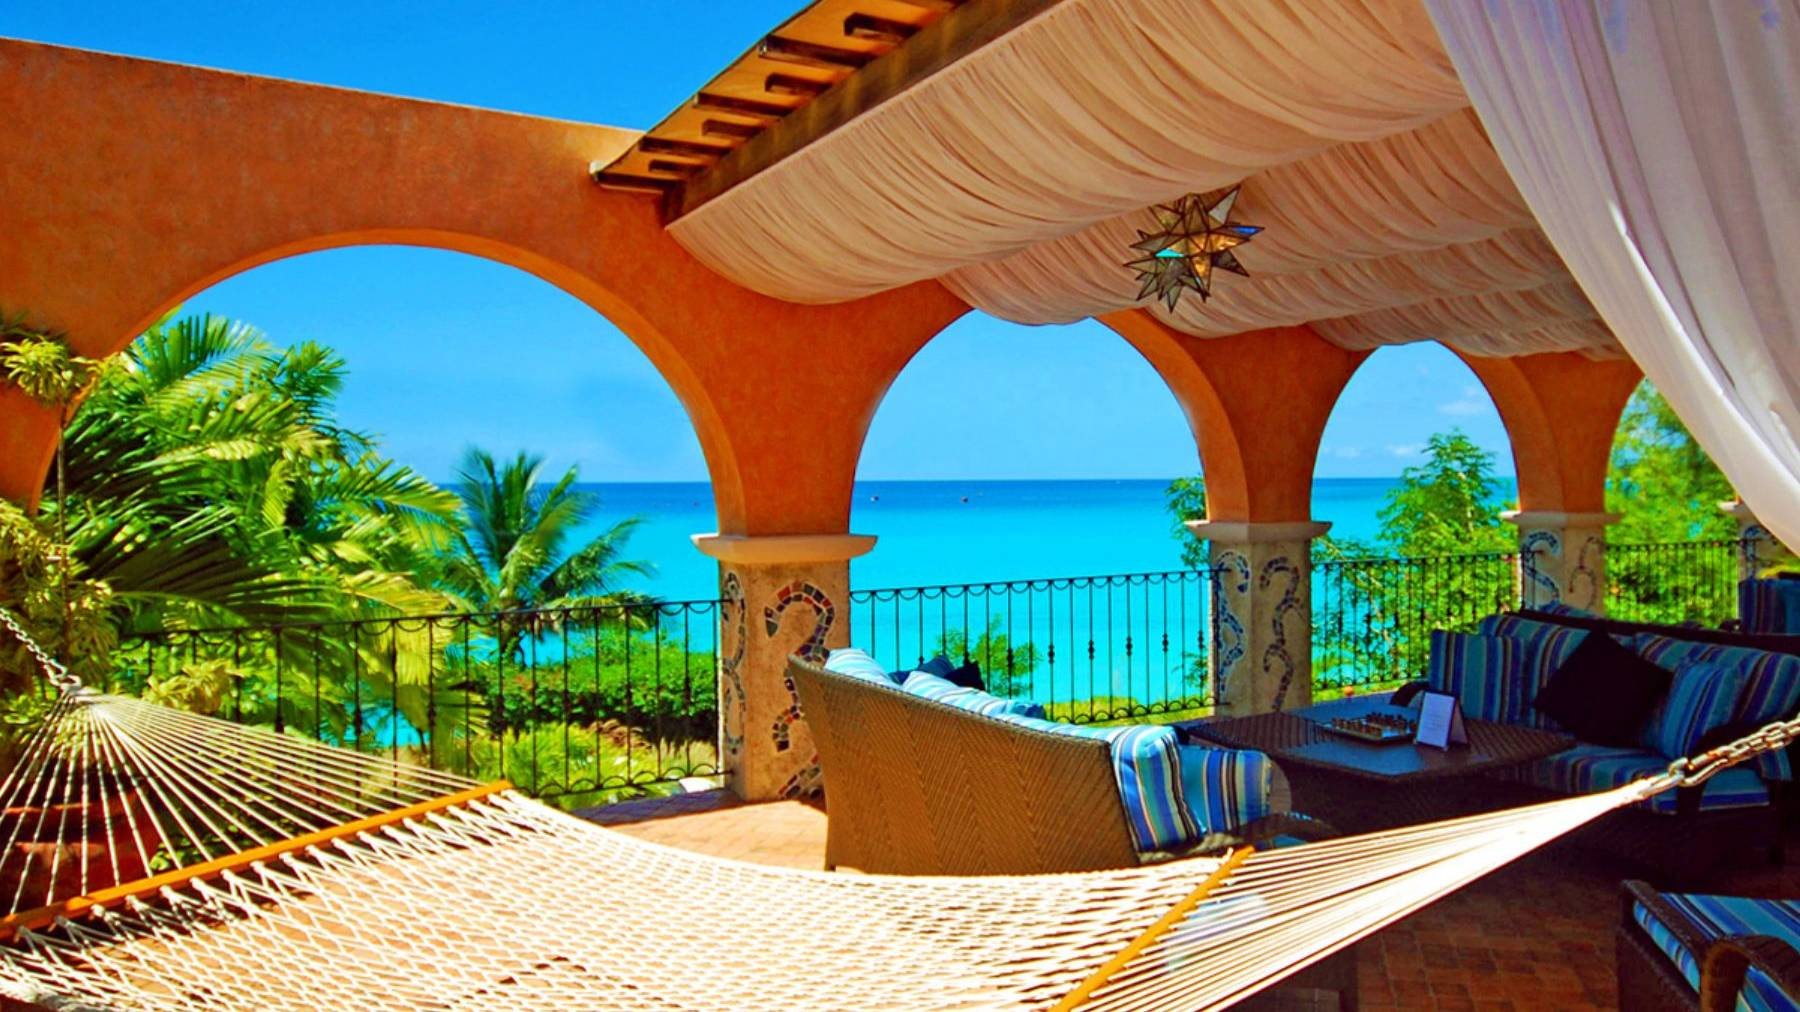 little-arches-boutique-hotel-barbados-images-24.jpeg